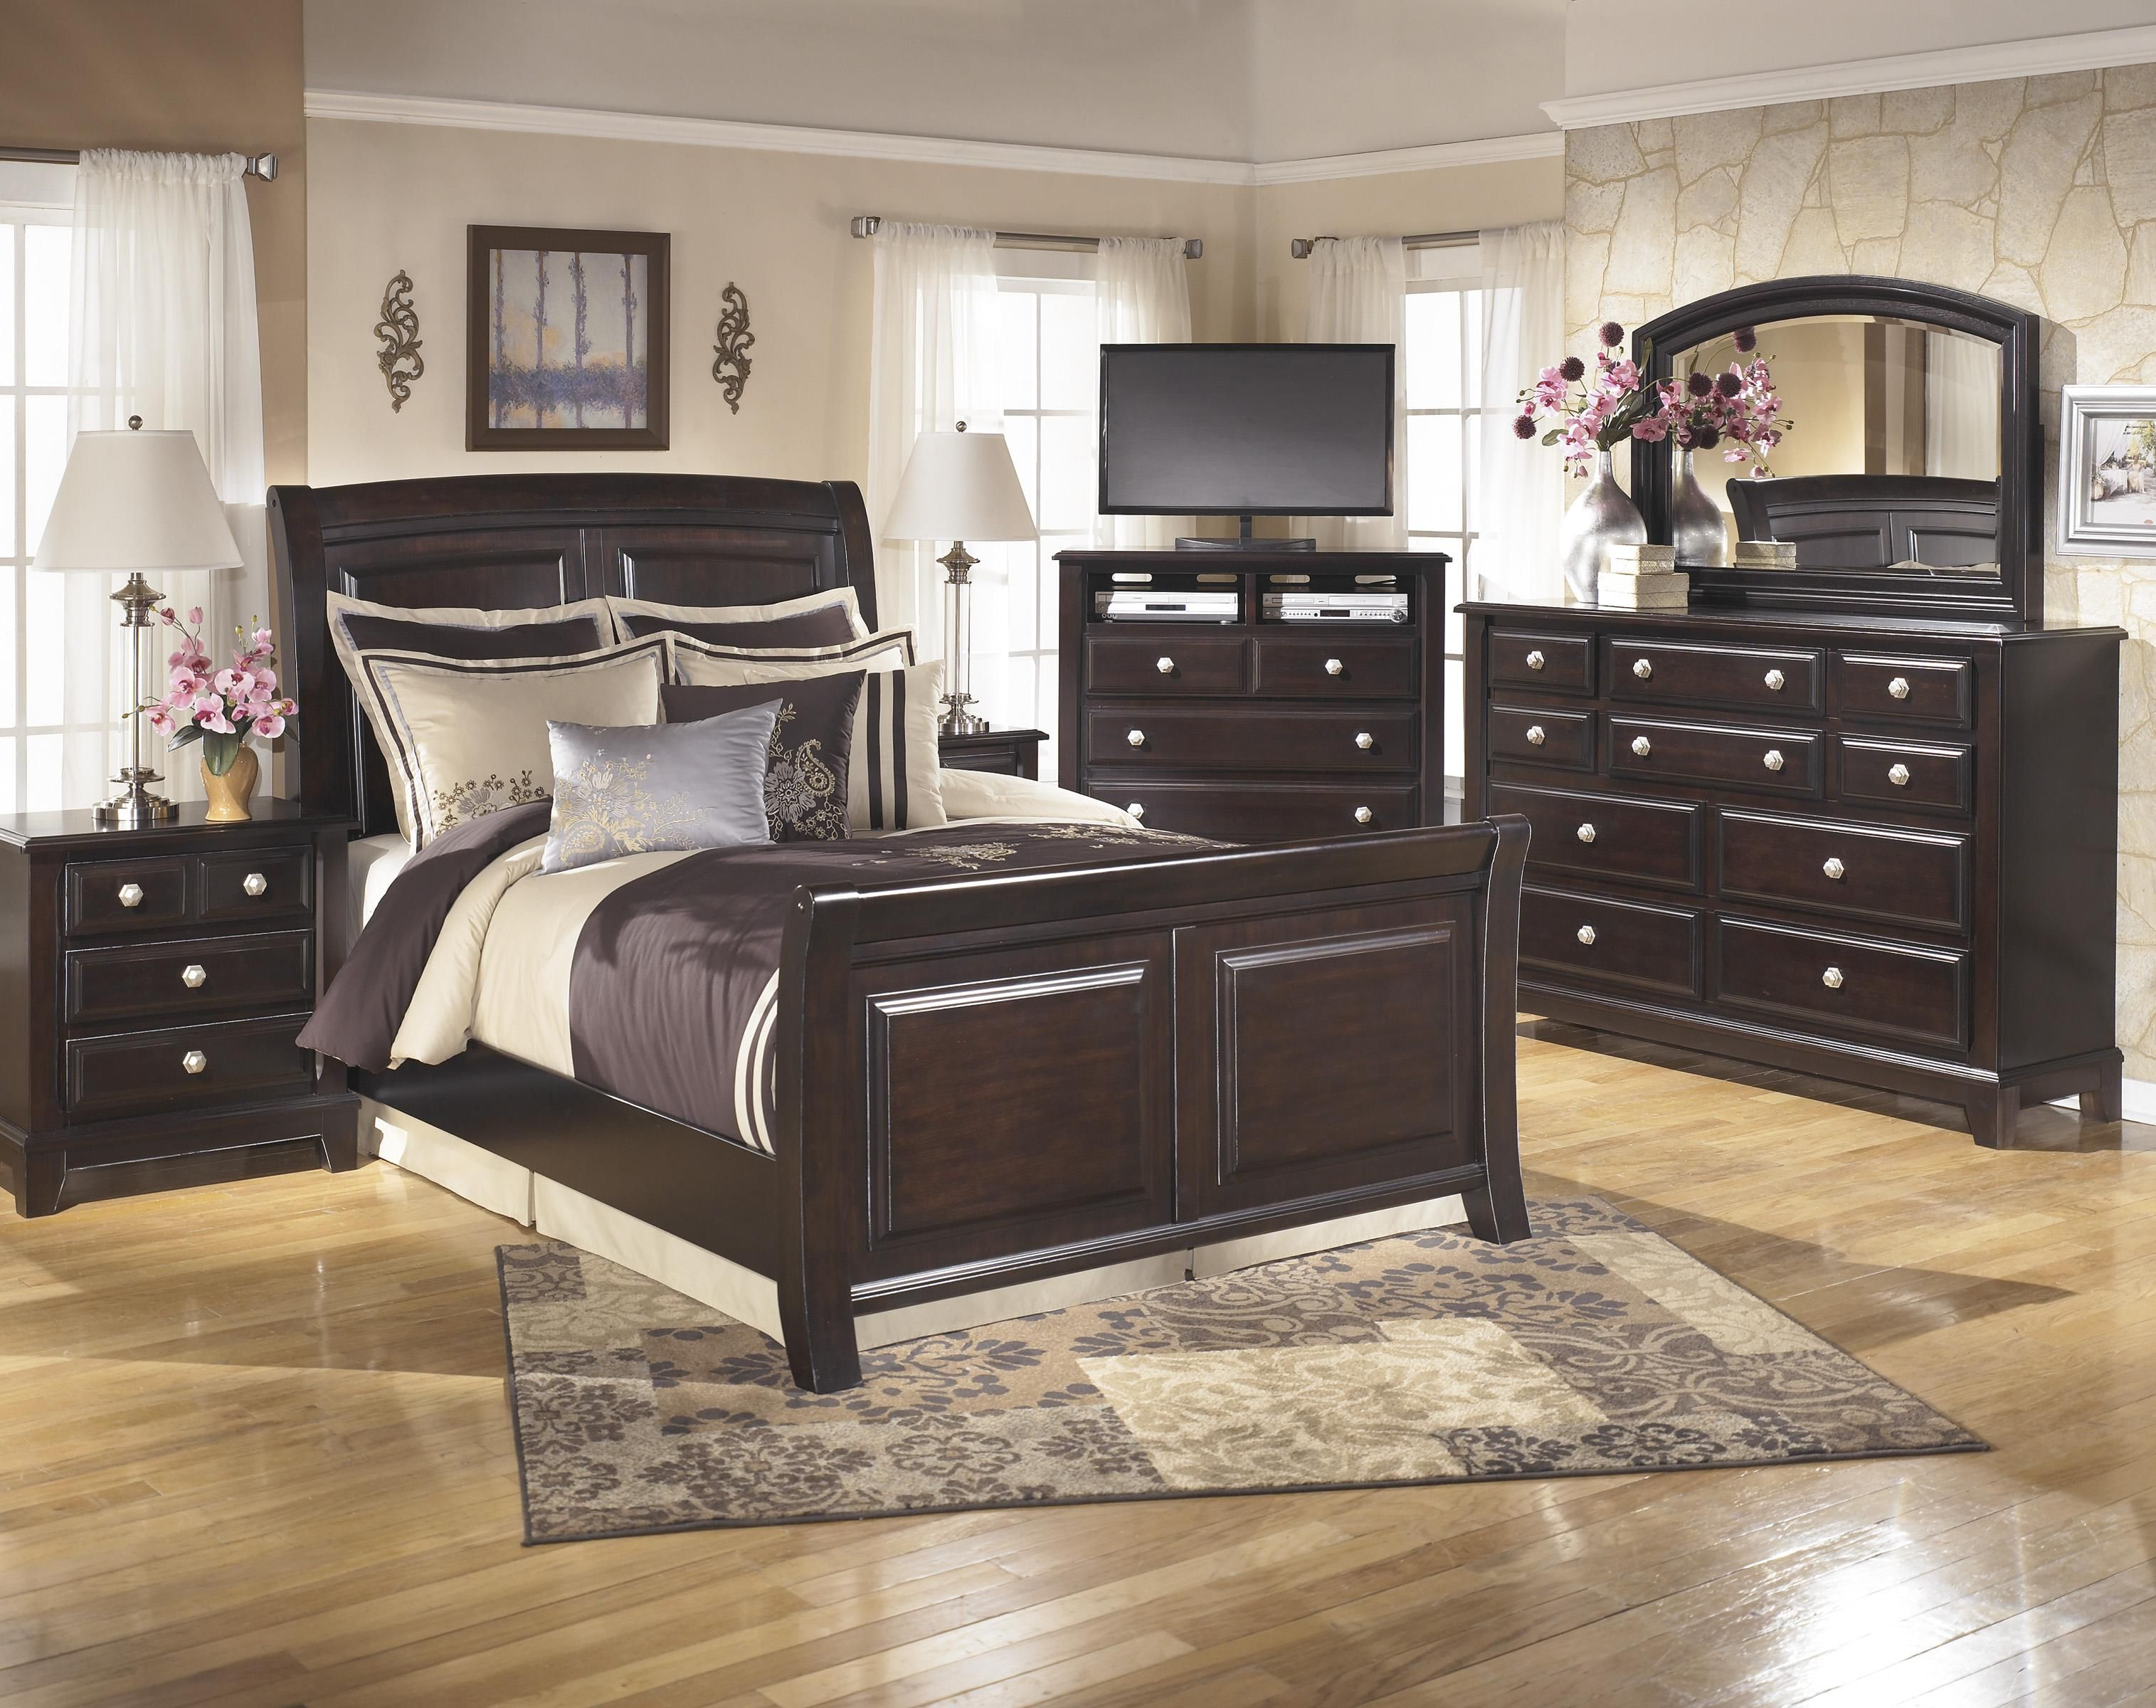 Ridgley Queen Bedroom Group By Signature Design By Ashley Ashley Bedroom Furniture Sets Bedroom Furniture Sets Cheap Bedroom Furniture